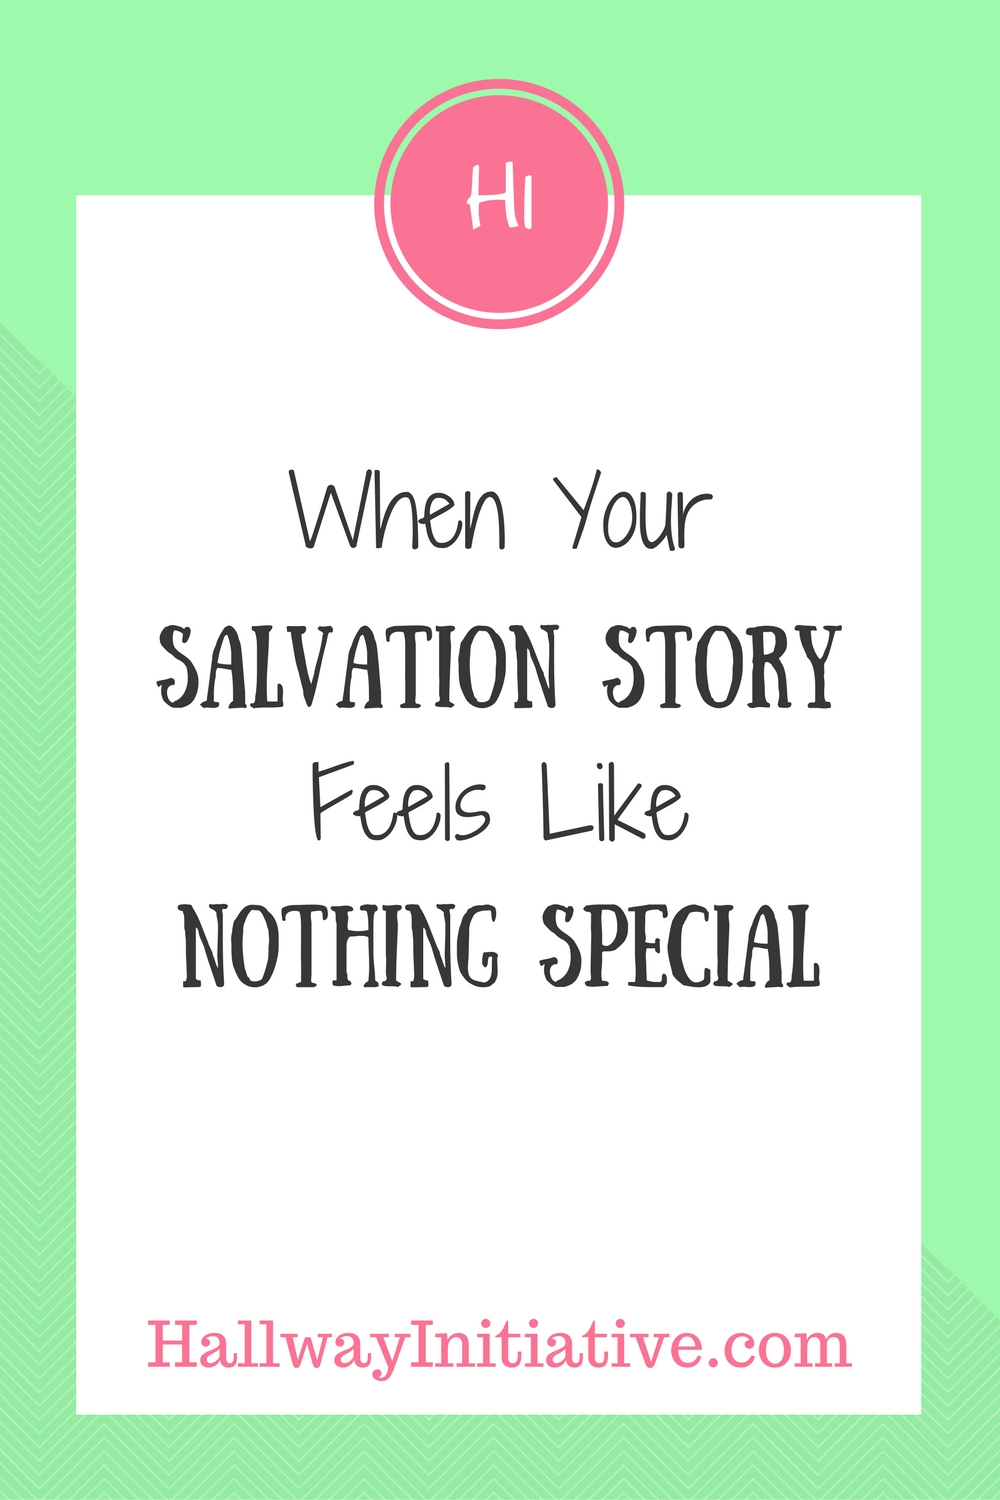 When your salvation story seems like nothing special